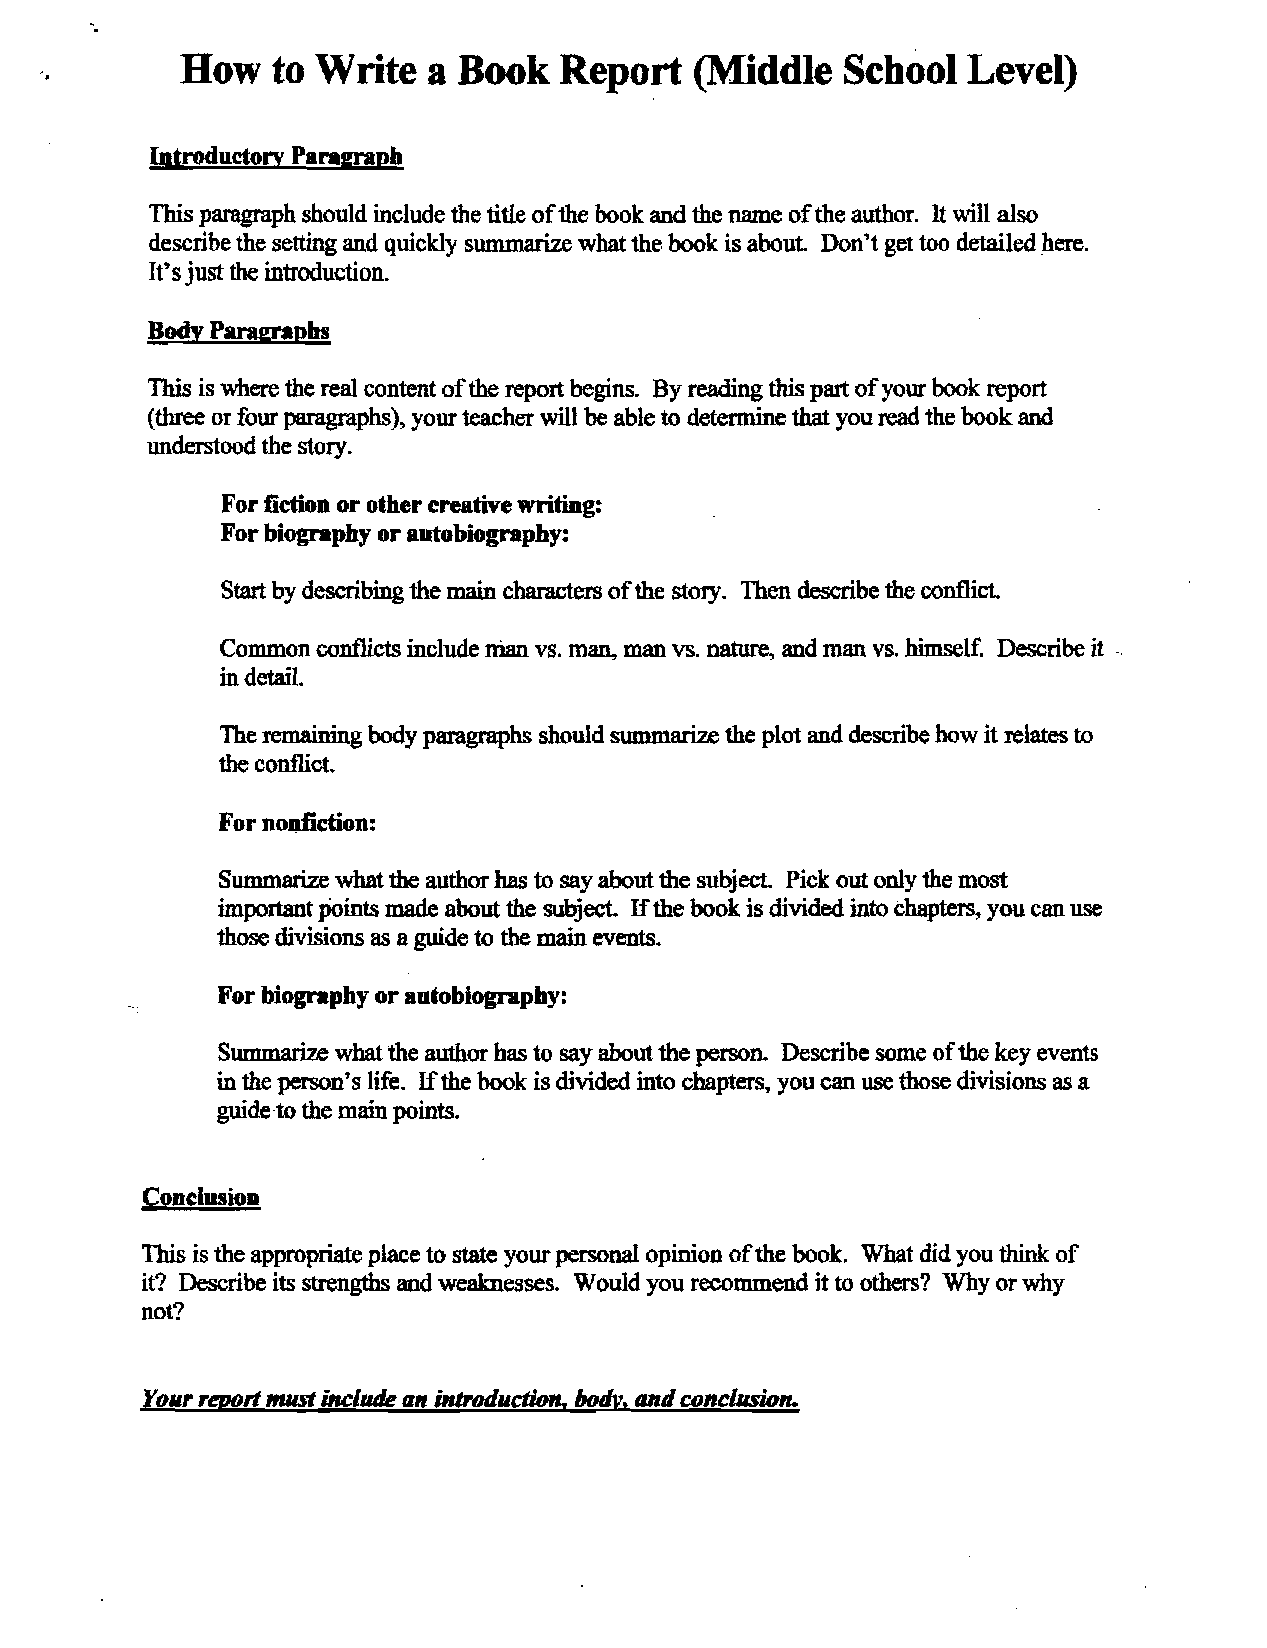 015 Canterbury Tales Essay Research Paper Topics Prologue Questions Outline Examples20 Middle Phenomenal School Science Full